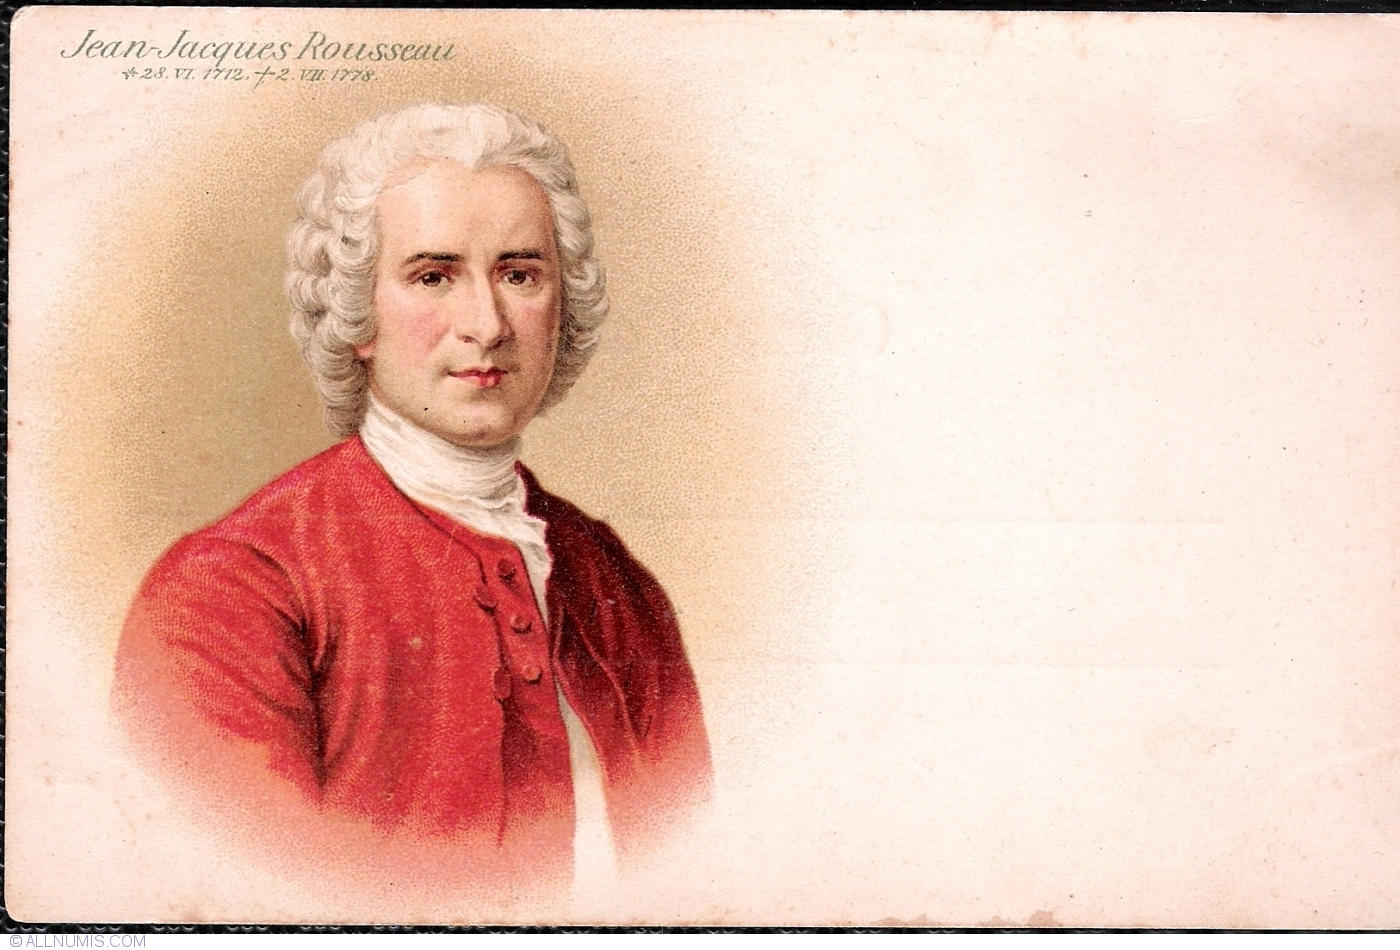 an analysis of the modern man in the philosophy of jean jacques rousseau and kahlil gibran (together making up the heart of modern philosophy) to understand man  analysis makes clear that modern  michel foucault and the freedom of philosophy.